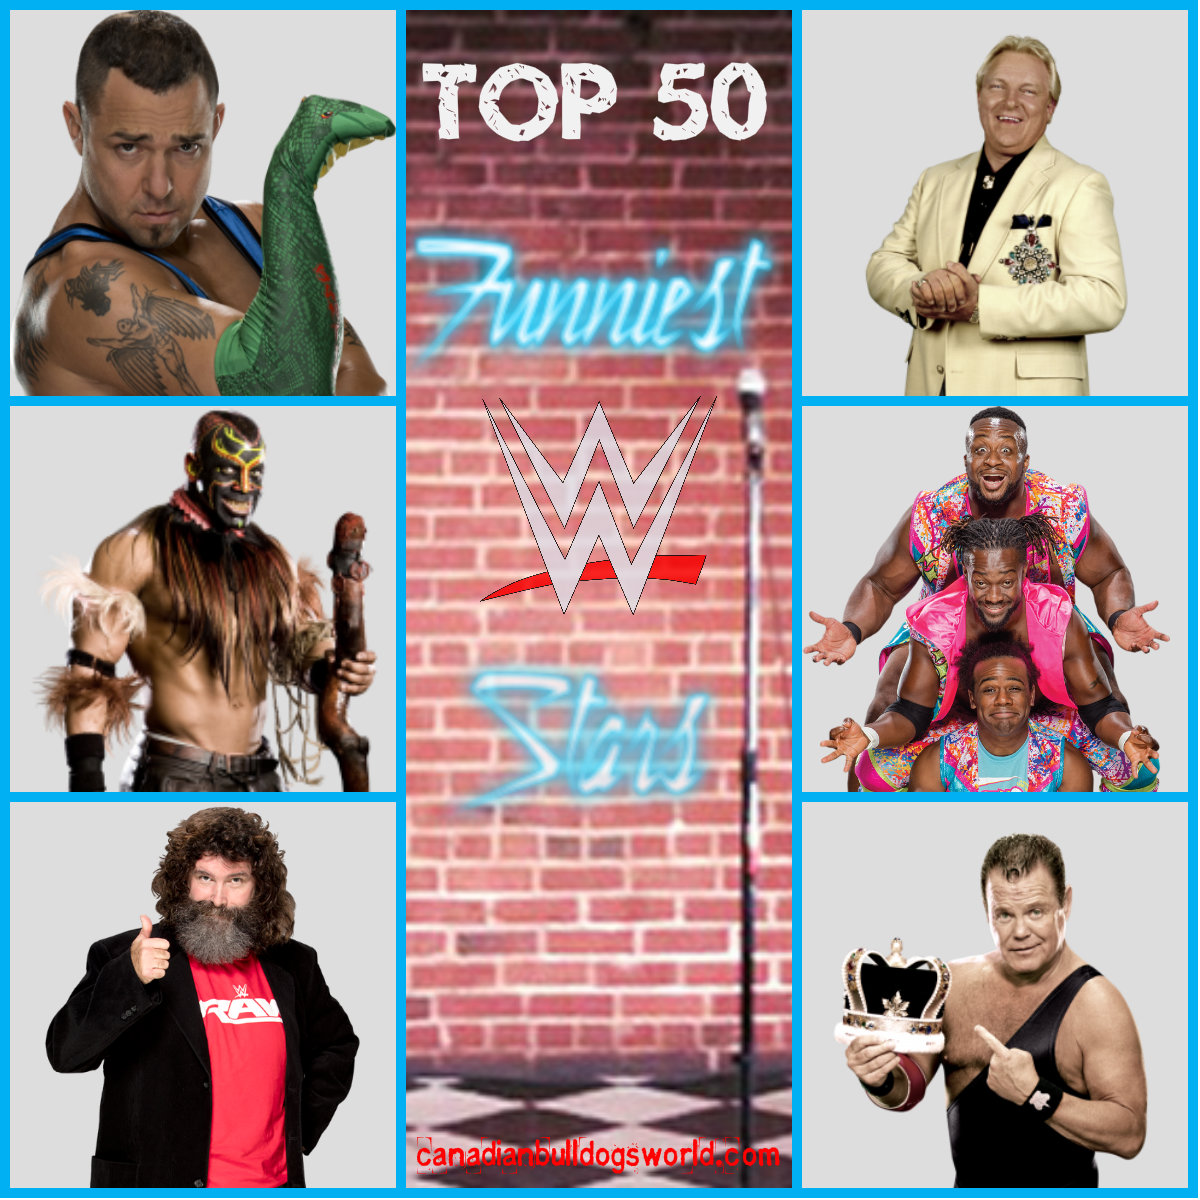 Top 50 Funniest WWE Stars